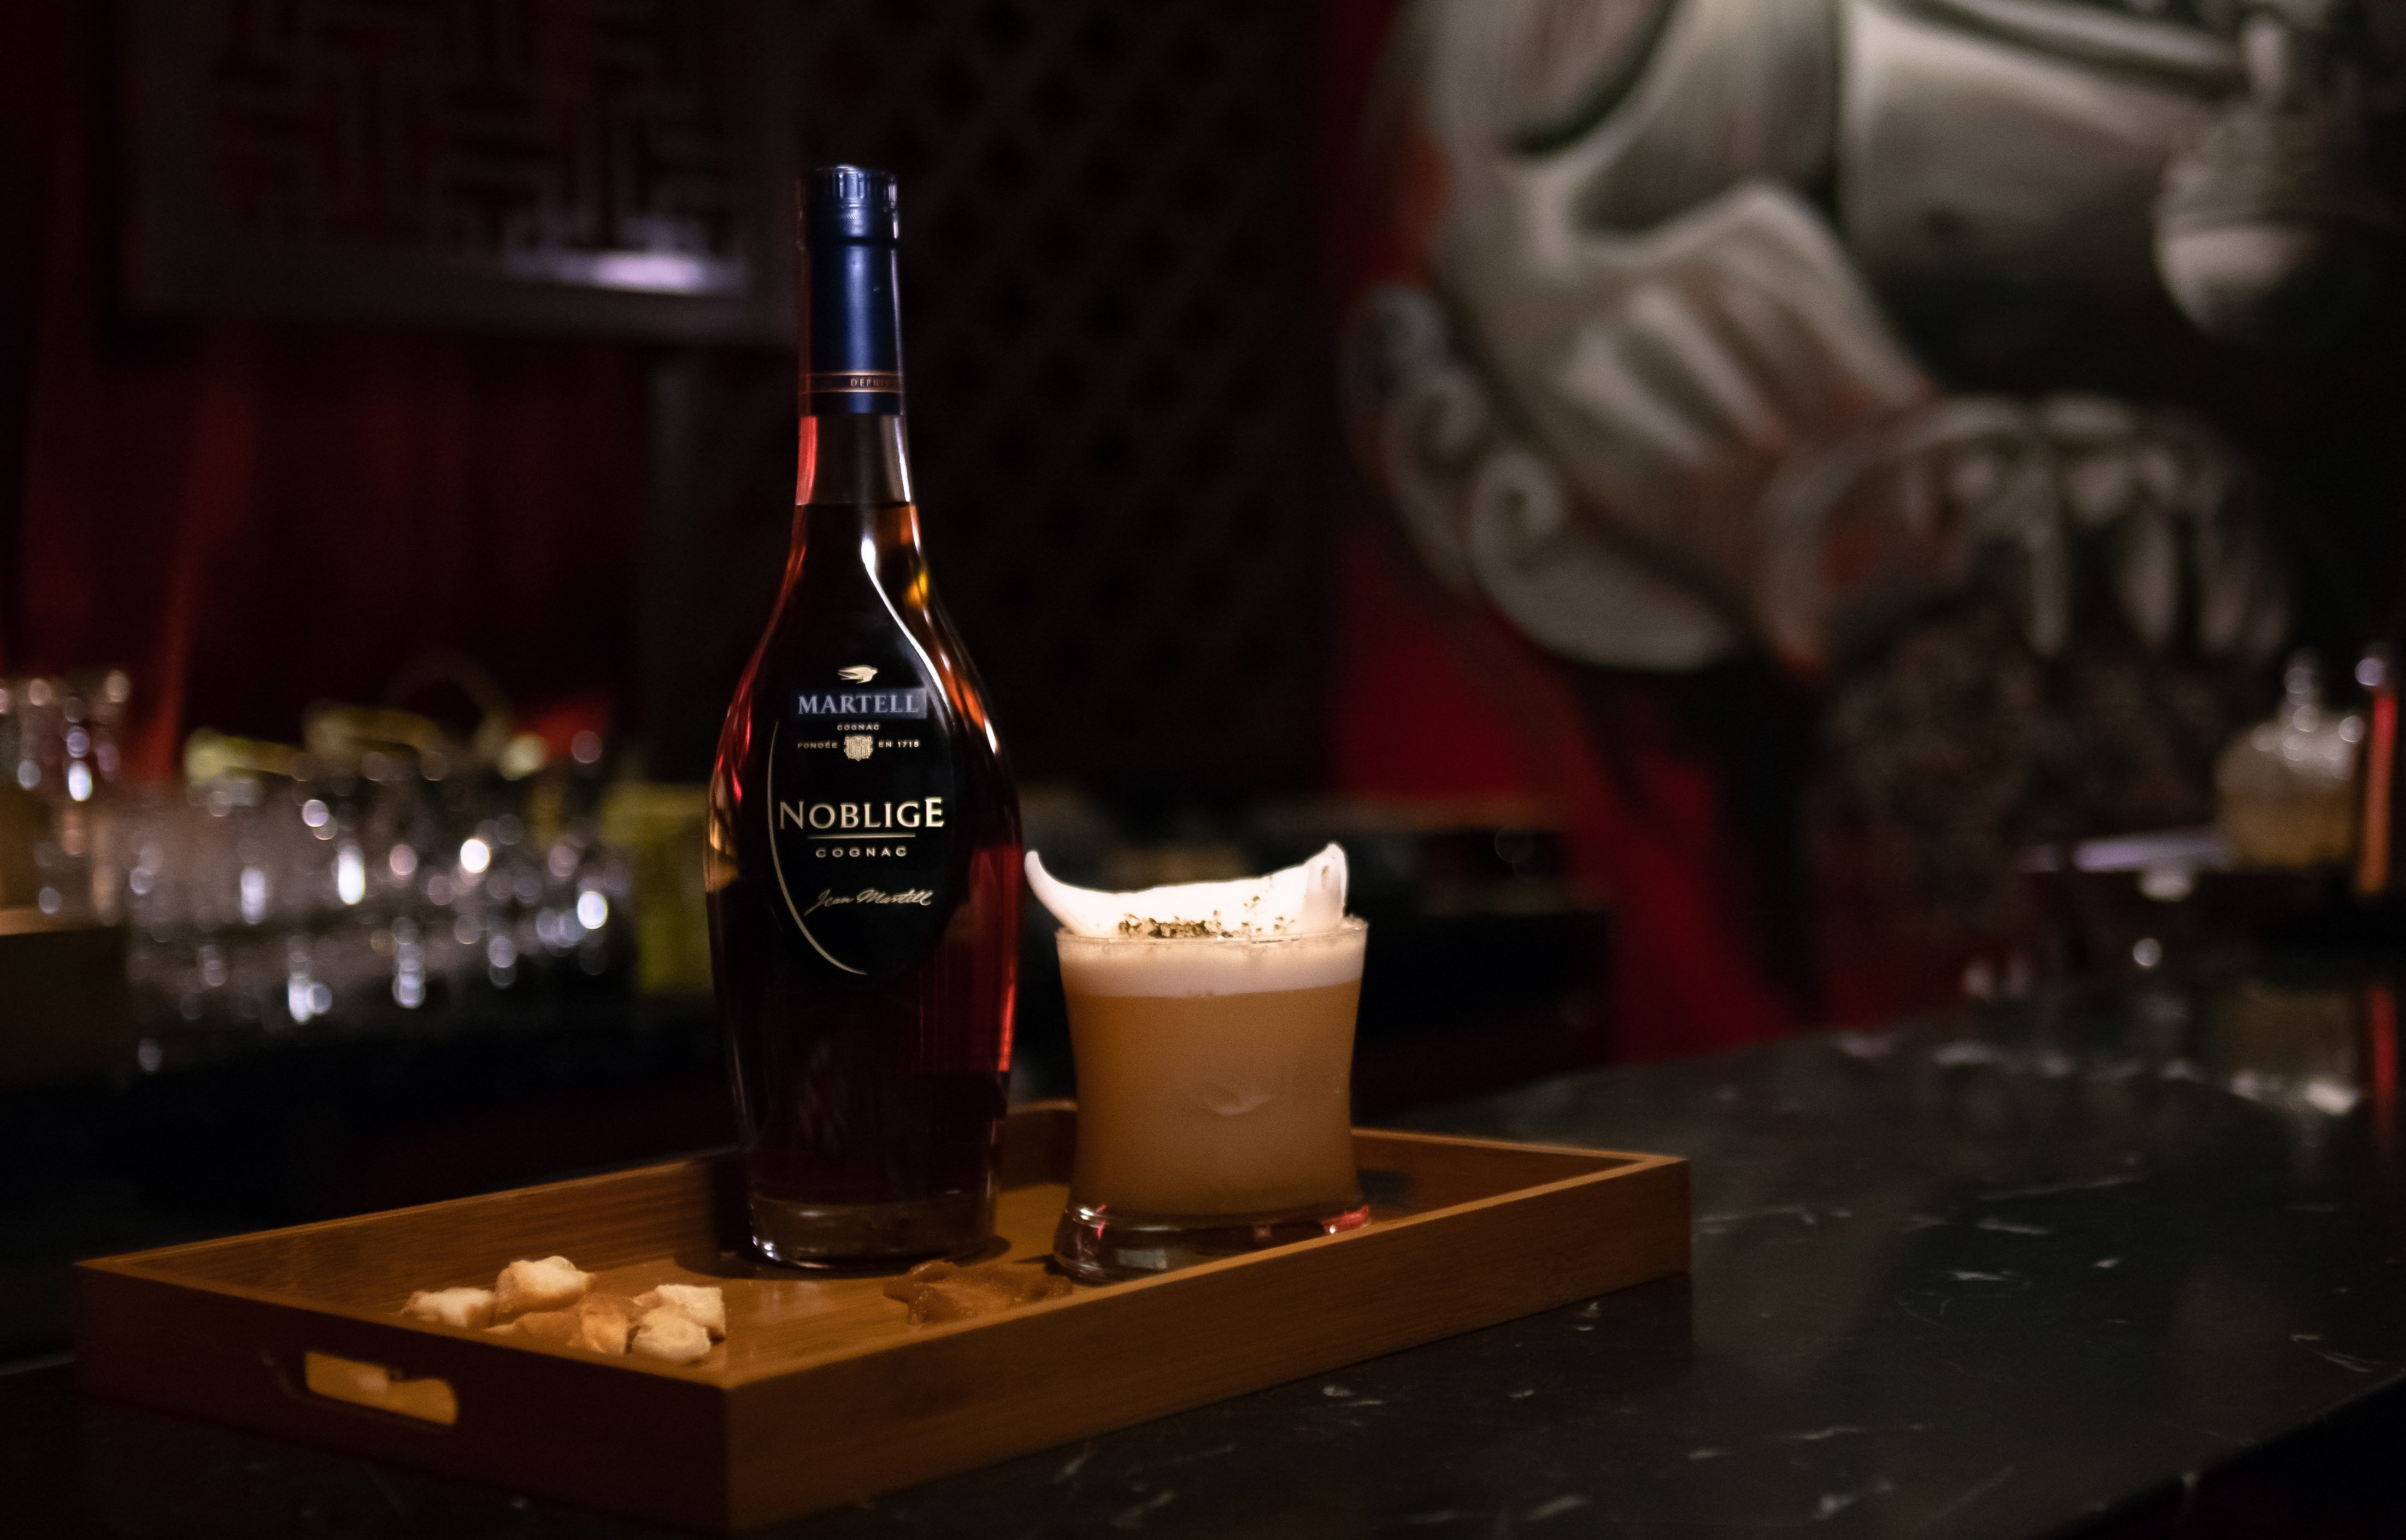 Unlock the Bars: Manchu Bar explores the flavours of roti bakar with Martell Noblige